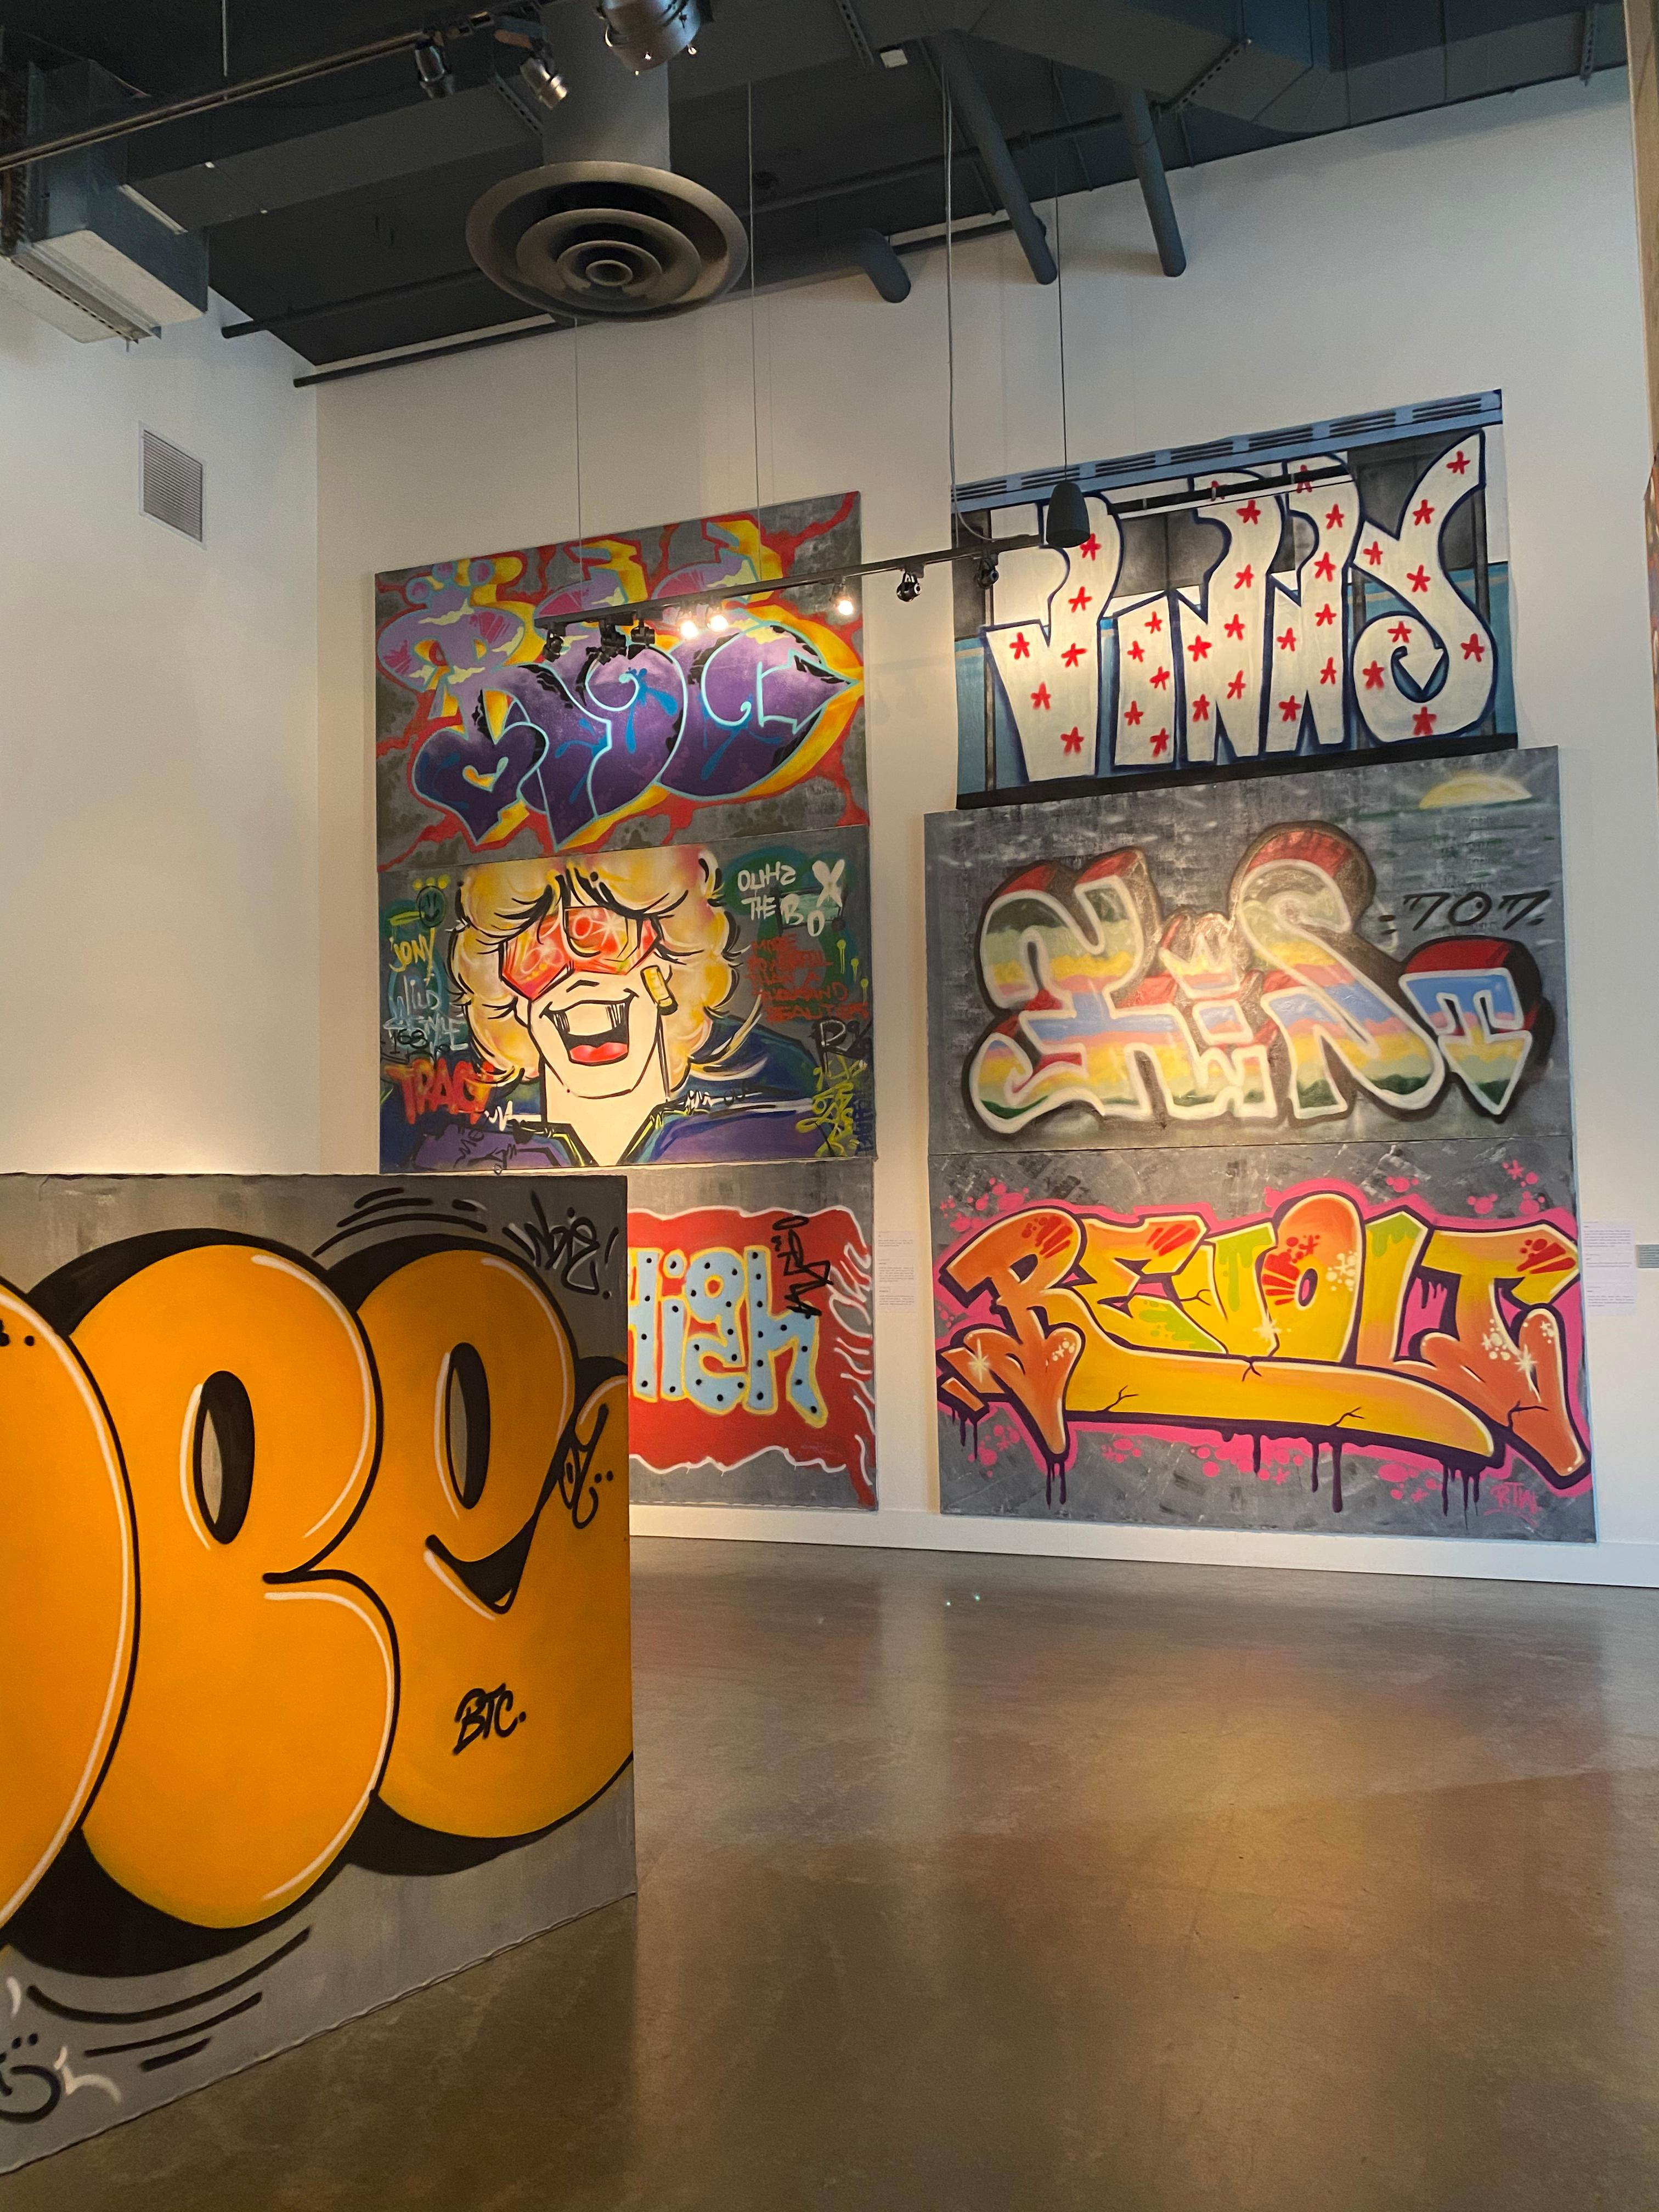 <em>American Graffiti: From the Streets to the Canvas</em>{&nbsp;}features a one of a kind, comprehensive exposition of the genre. The exhibit will allow the community a rare public viewing of 85 spectacular Graffiti Art originals held in a private collection. (Text and Image: Schack Art Center)